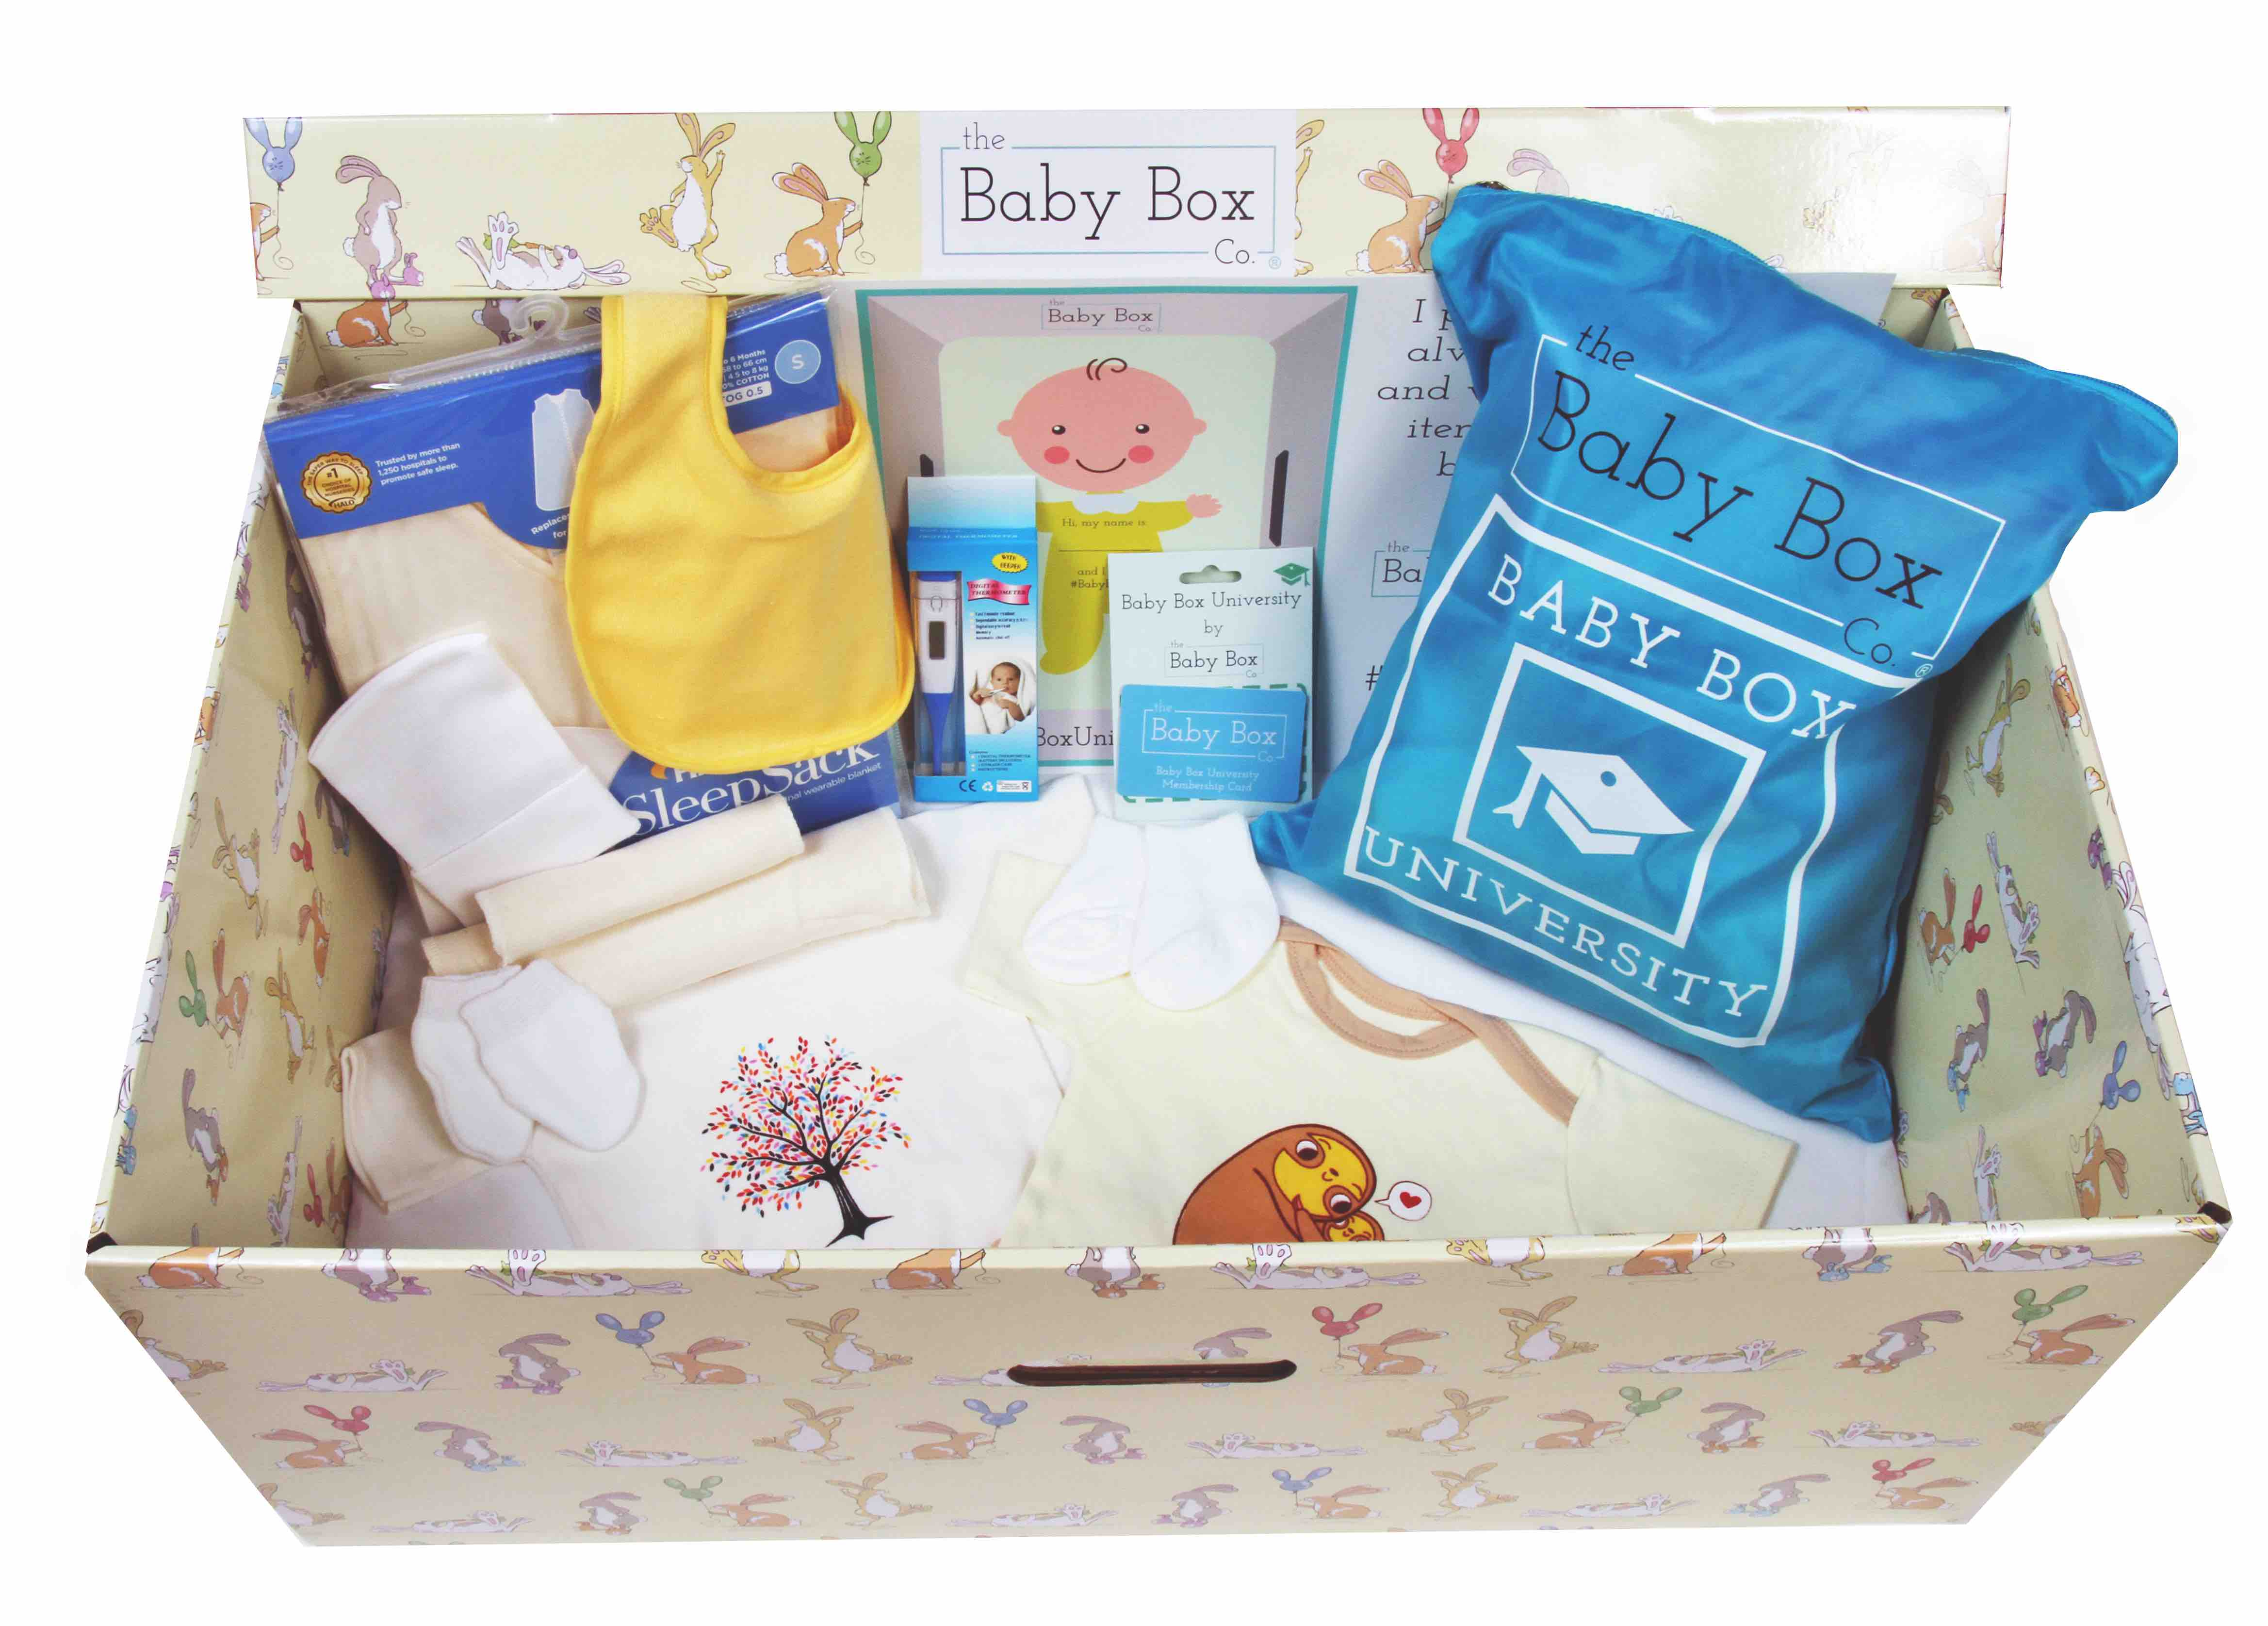 Free Baby Gifts Uk : Baby box launch event heart of england nhs foundation trust